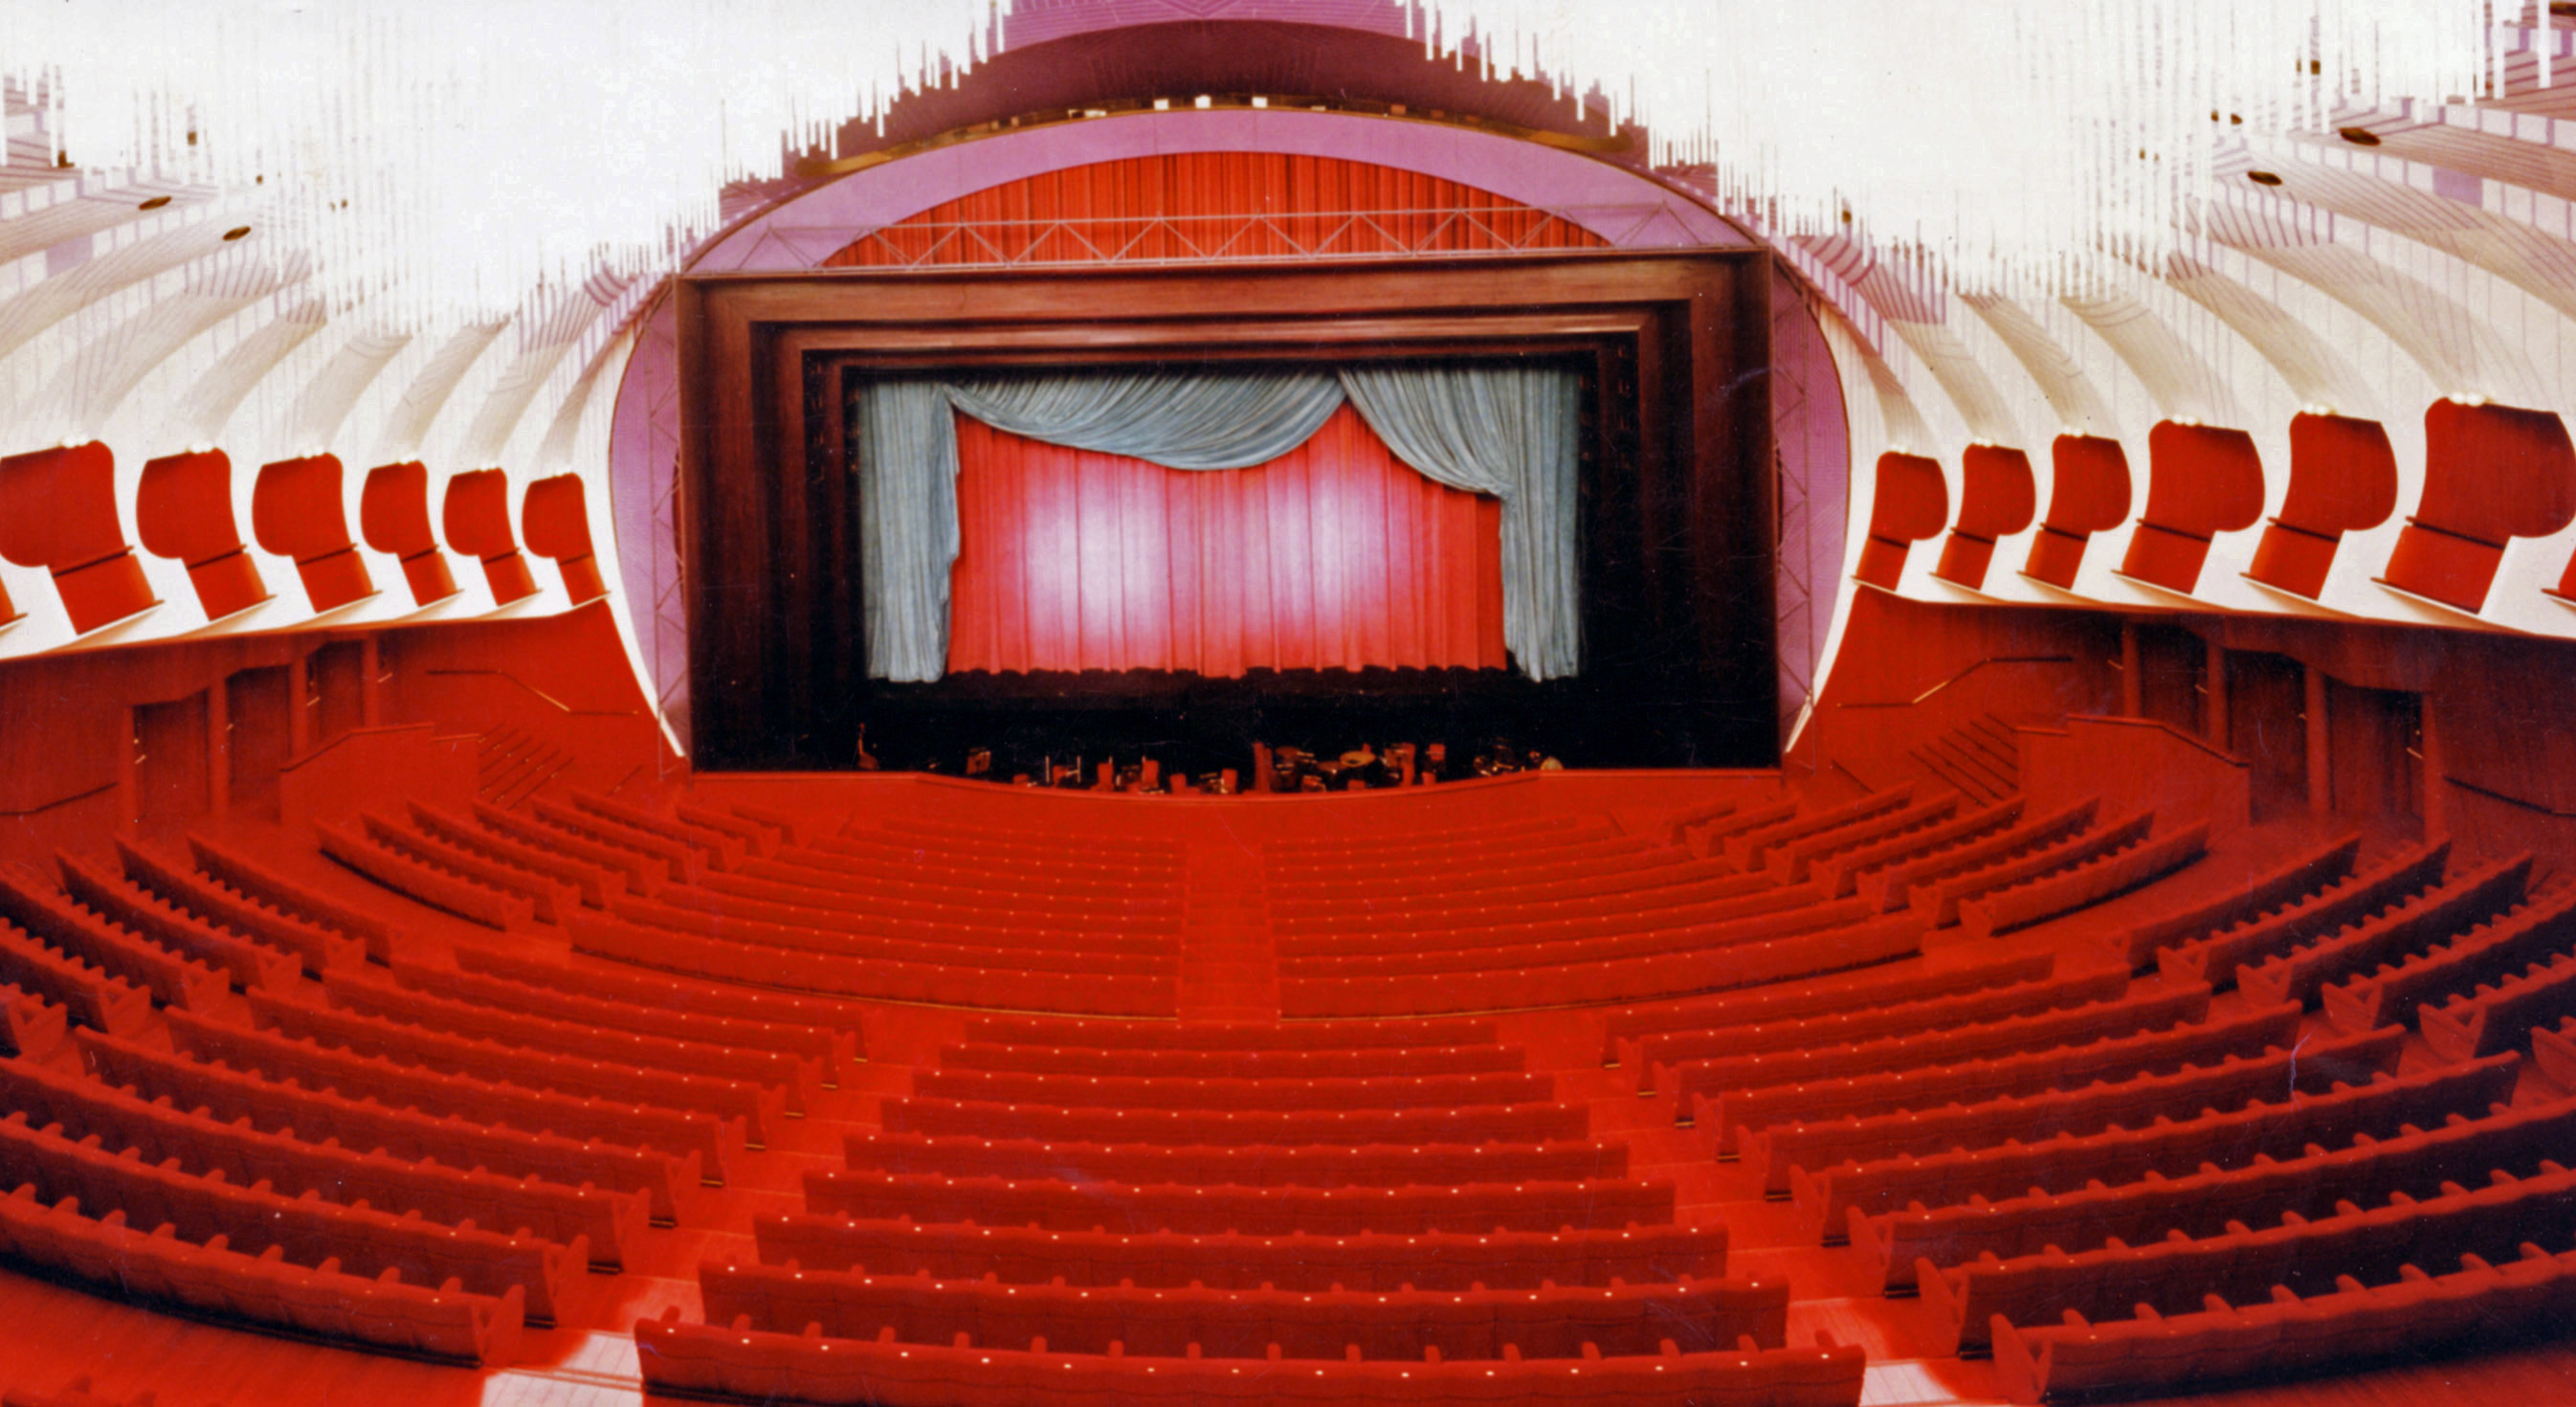 The proscenium of the Teatro Regio after the acoustical restoration of 1996